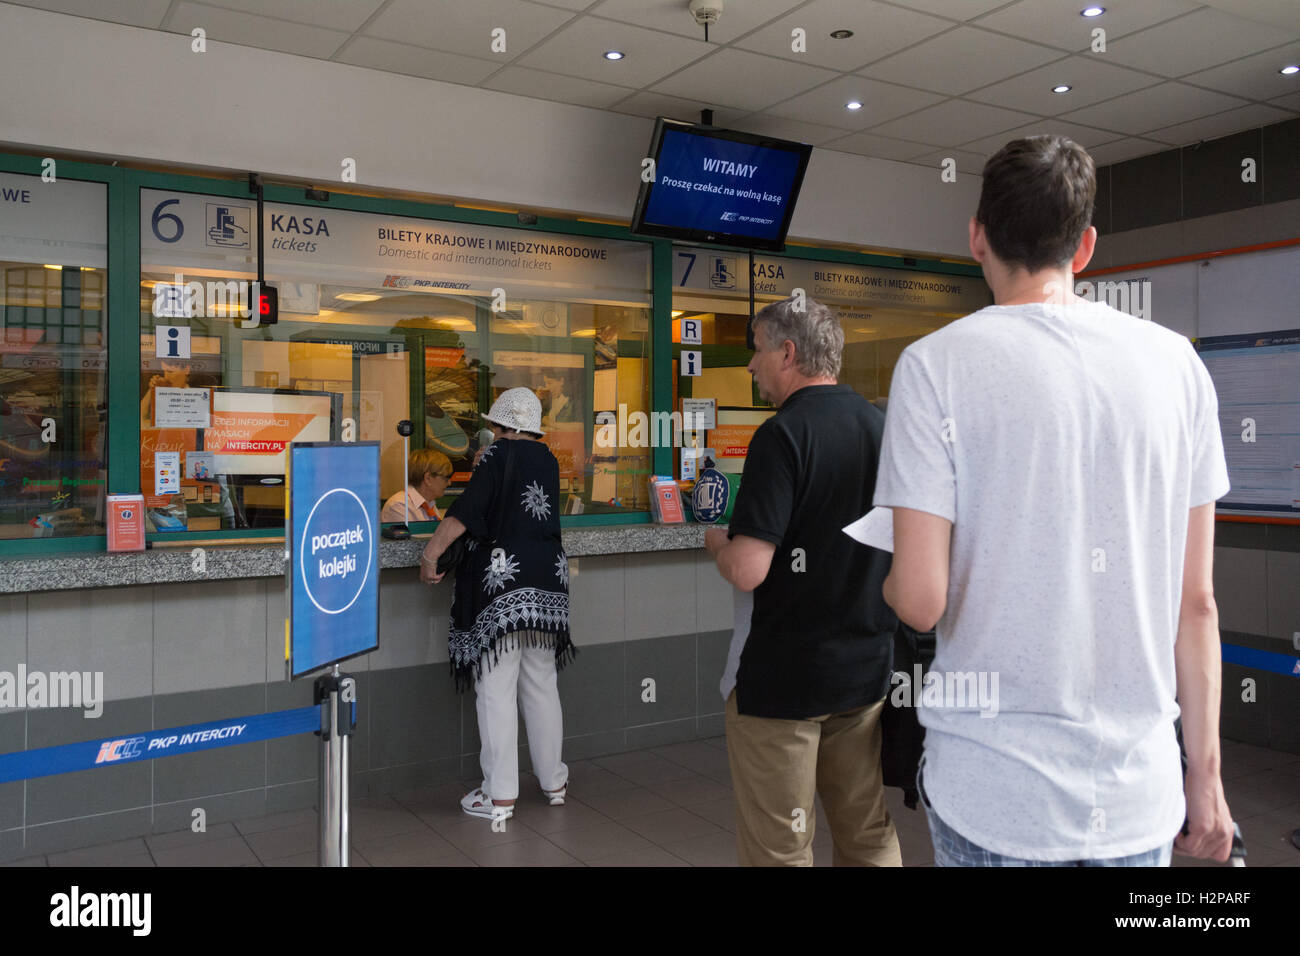 woman buying tickets from the ticket desk at Glowny station, Gdansk, Poland - Stock Image